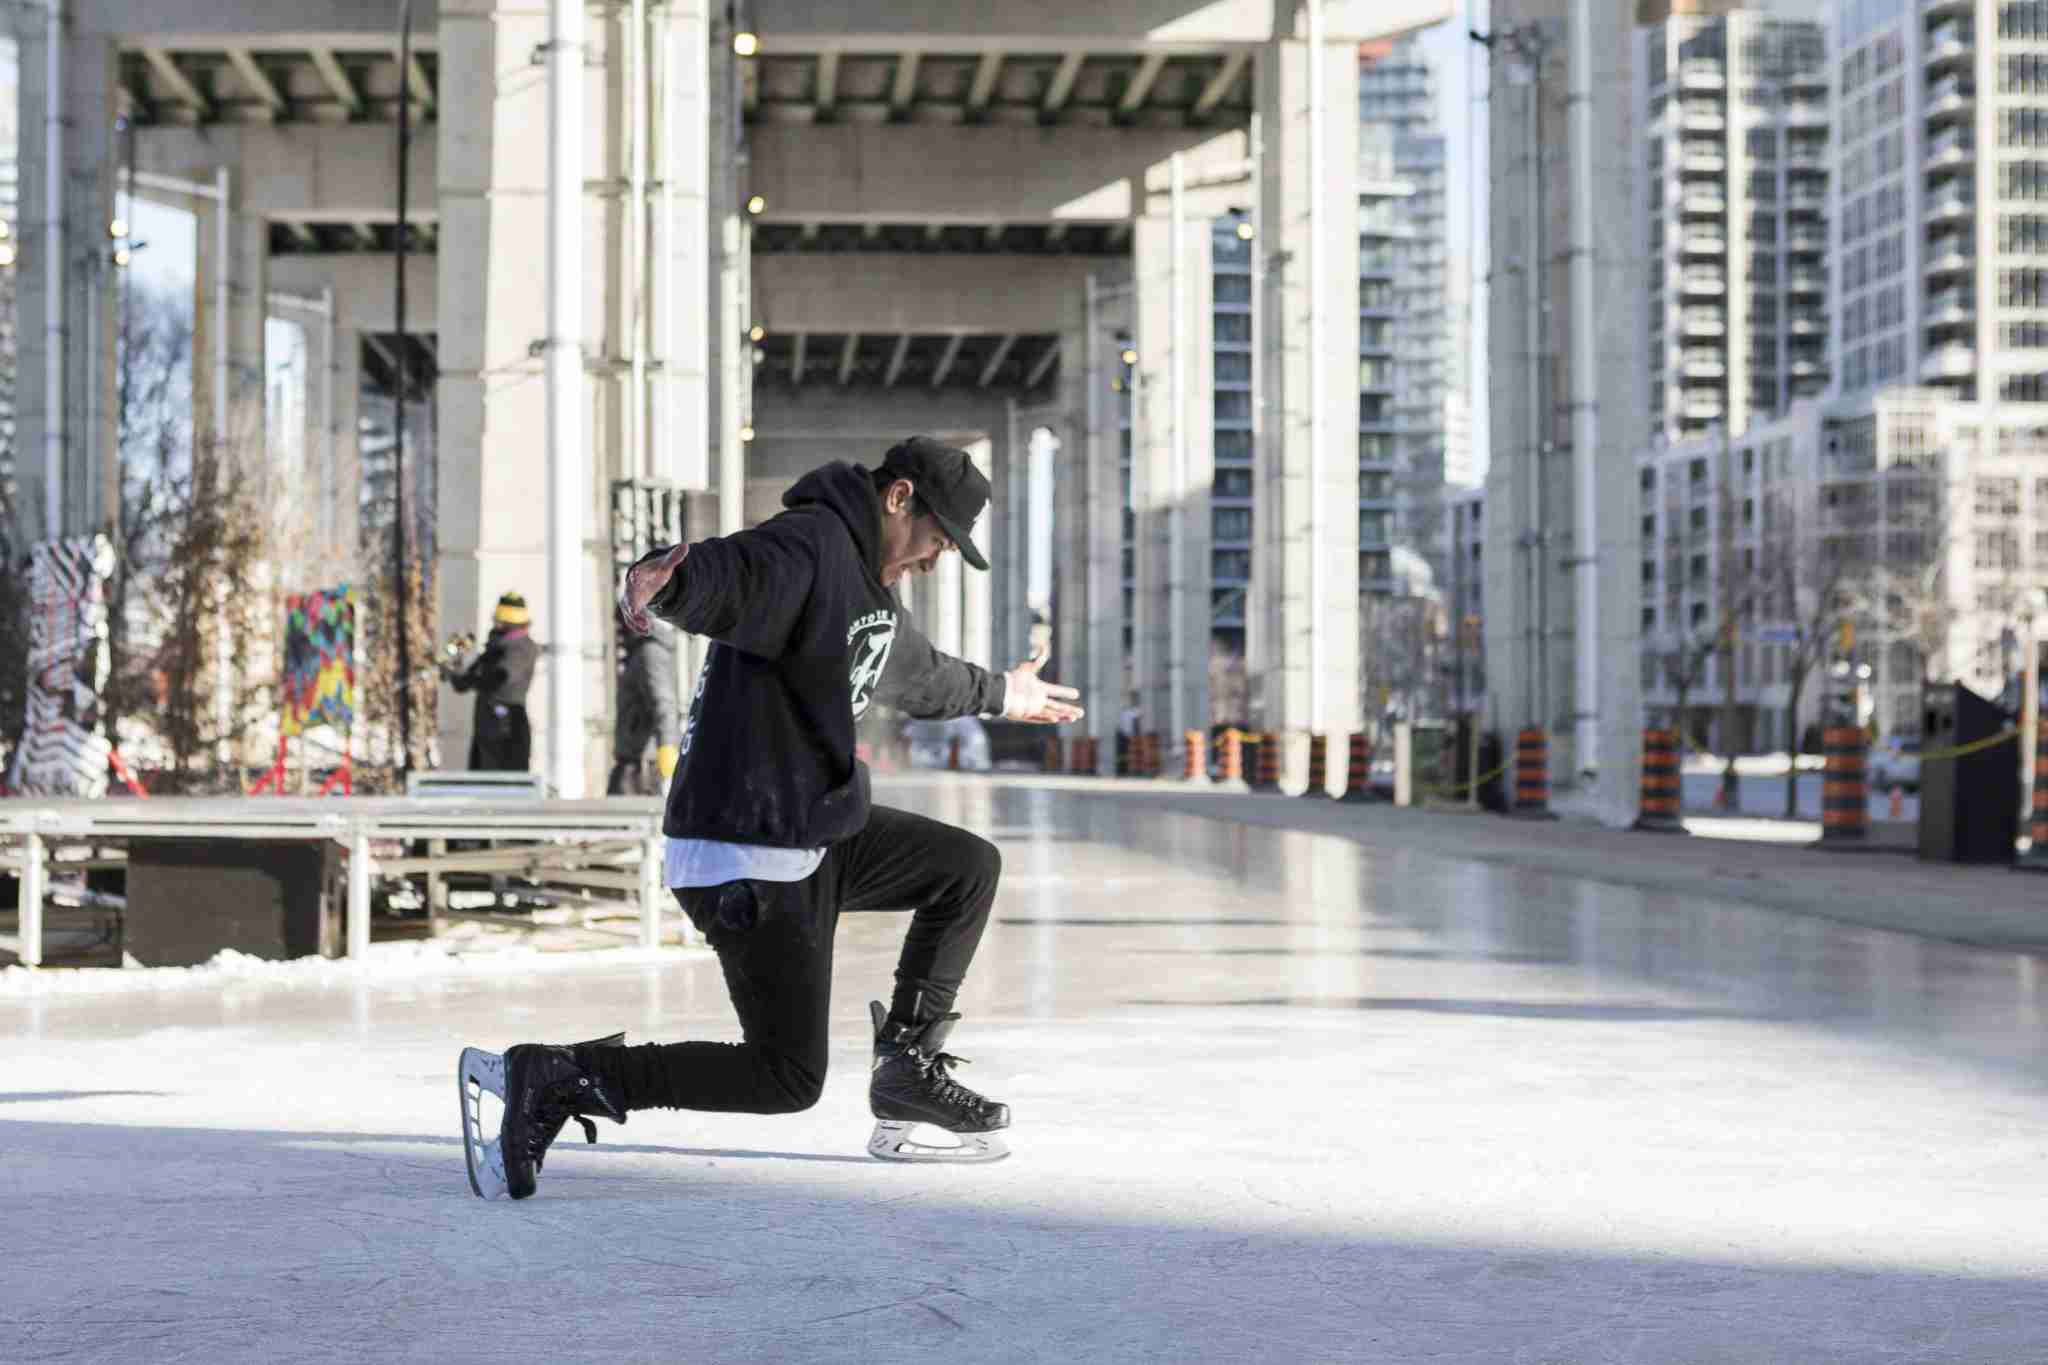 The Bentway project in Toronto has transformed unused space beneath a highway into a skate trail and culture hub. (Denise Militzer)